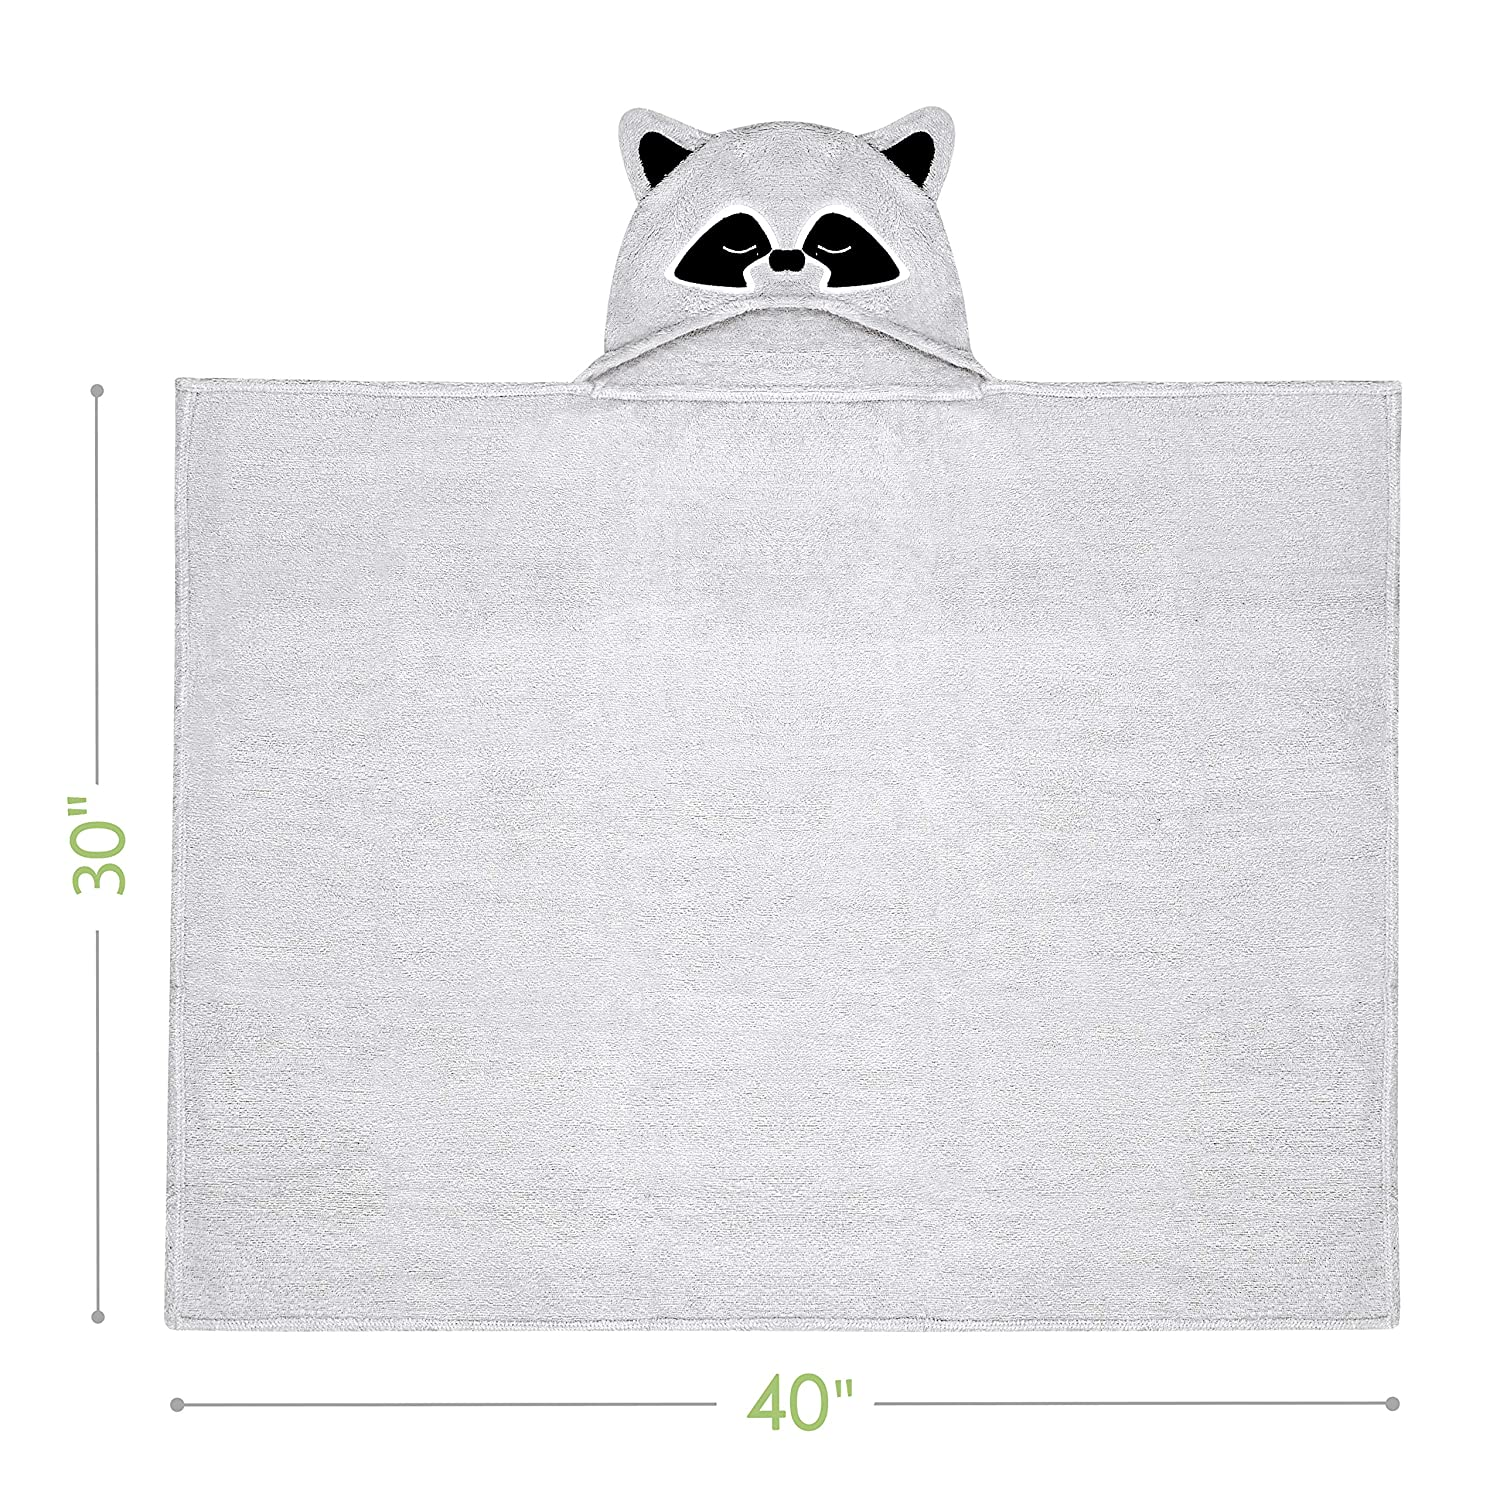 Rayon from Bamboo Baby Towel Extra Large and Super Absorbent Hooded Bath Towel for Babies,Toddlers Ultra Soft Baby Hooded Towel Perfect Baby Shower Gift for Boys and Girls by Natemia